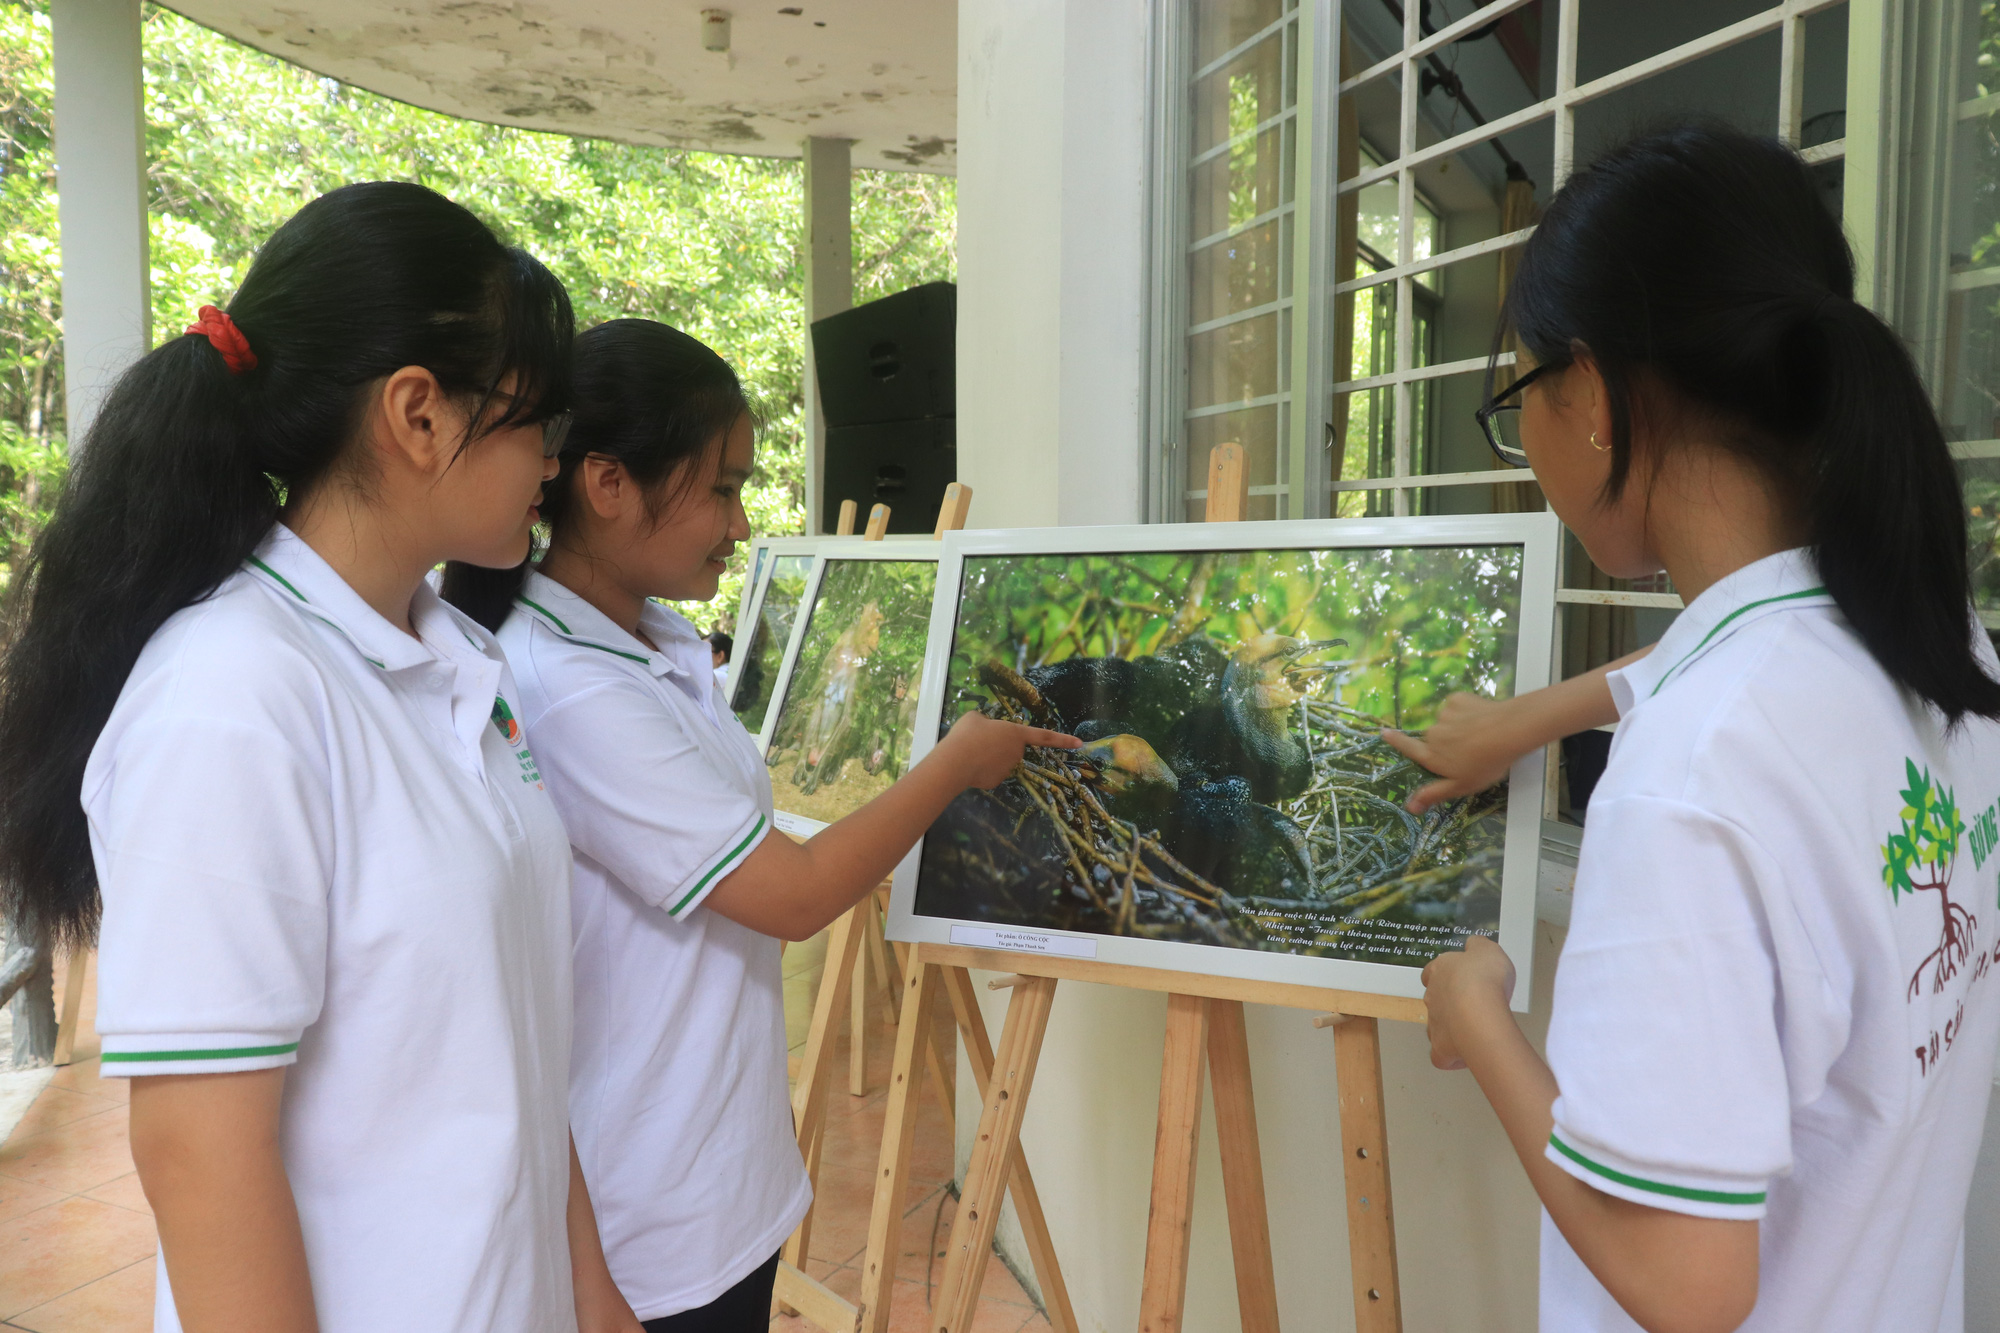 Participants view photos of the Can Gio Mangrove Forest in Can Gio District, Ho Chi Minh City at the prize-giving ceremony of a local photo contest, July 26, 2020. Photo: Thanh Chieu / Tuoi Tre